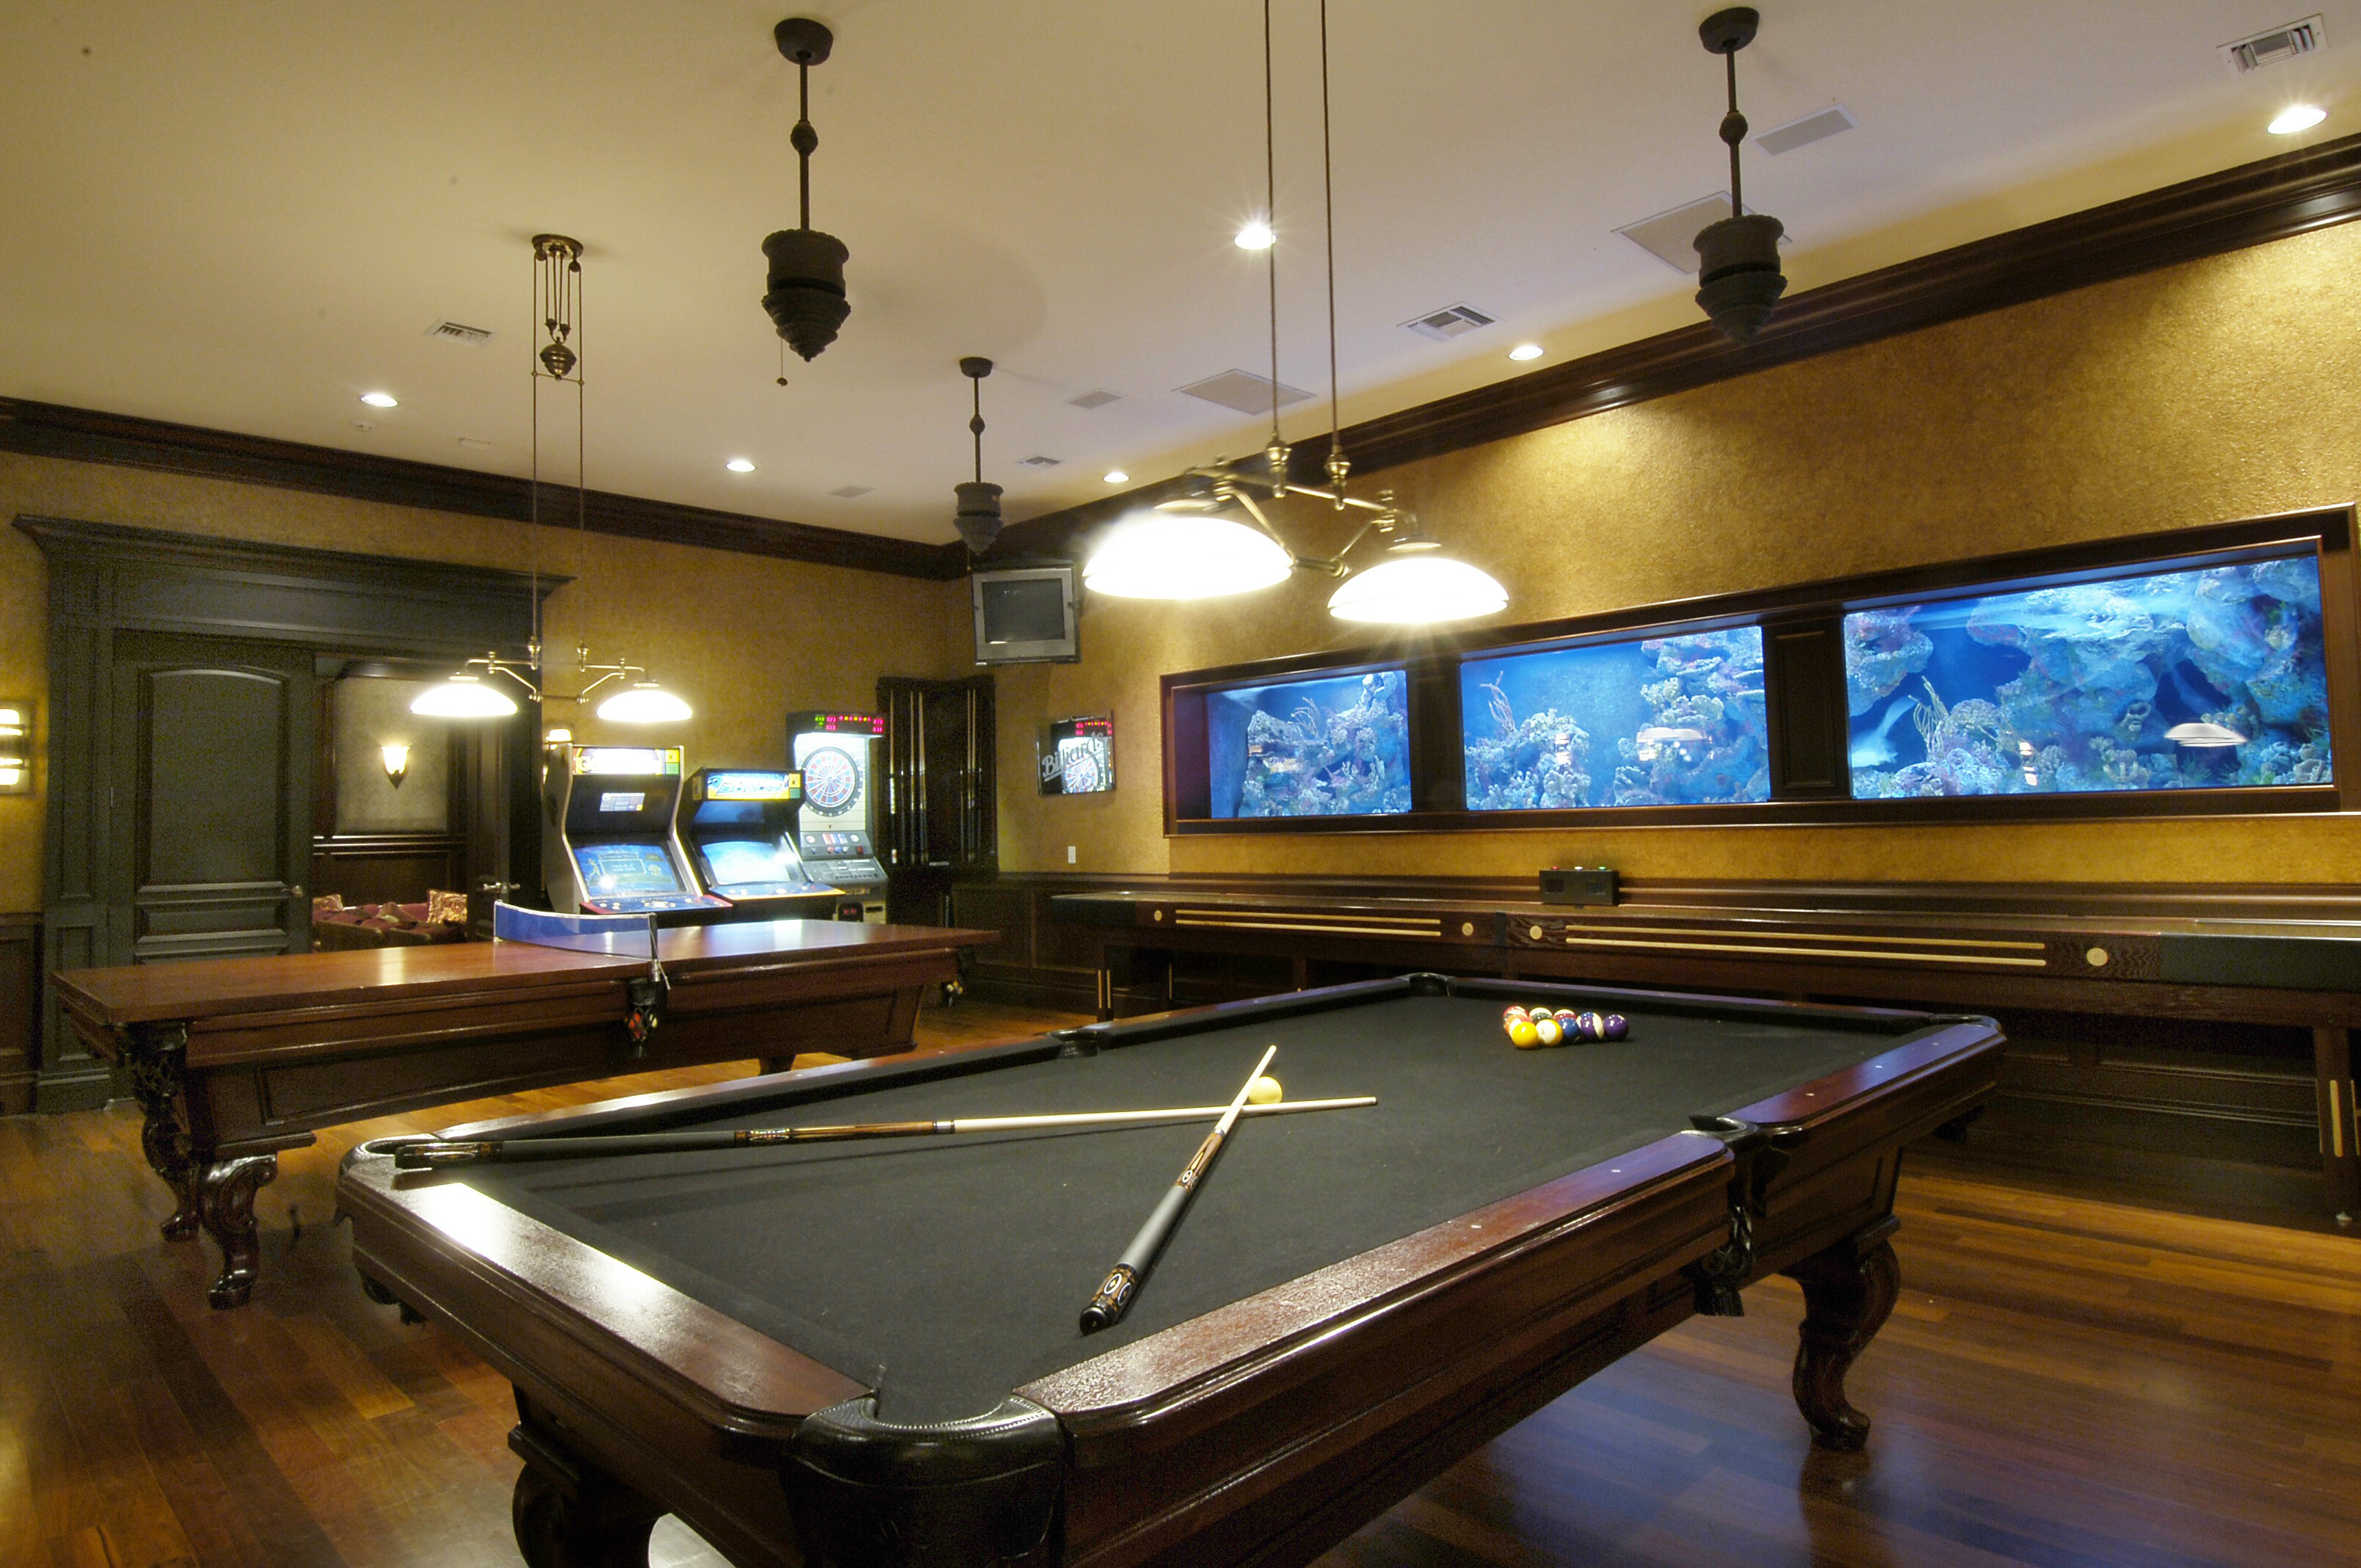 Best ideas about The Game Room . Save or Pin Classic Pool Table Under Ceiling Hanging Lights And Wall Now.